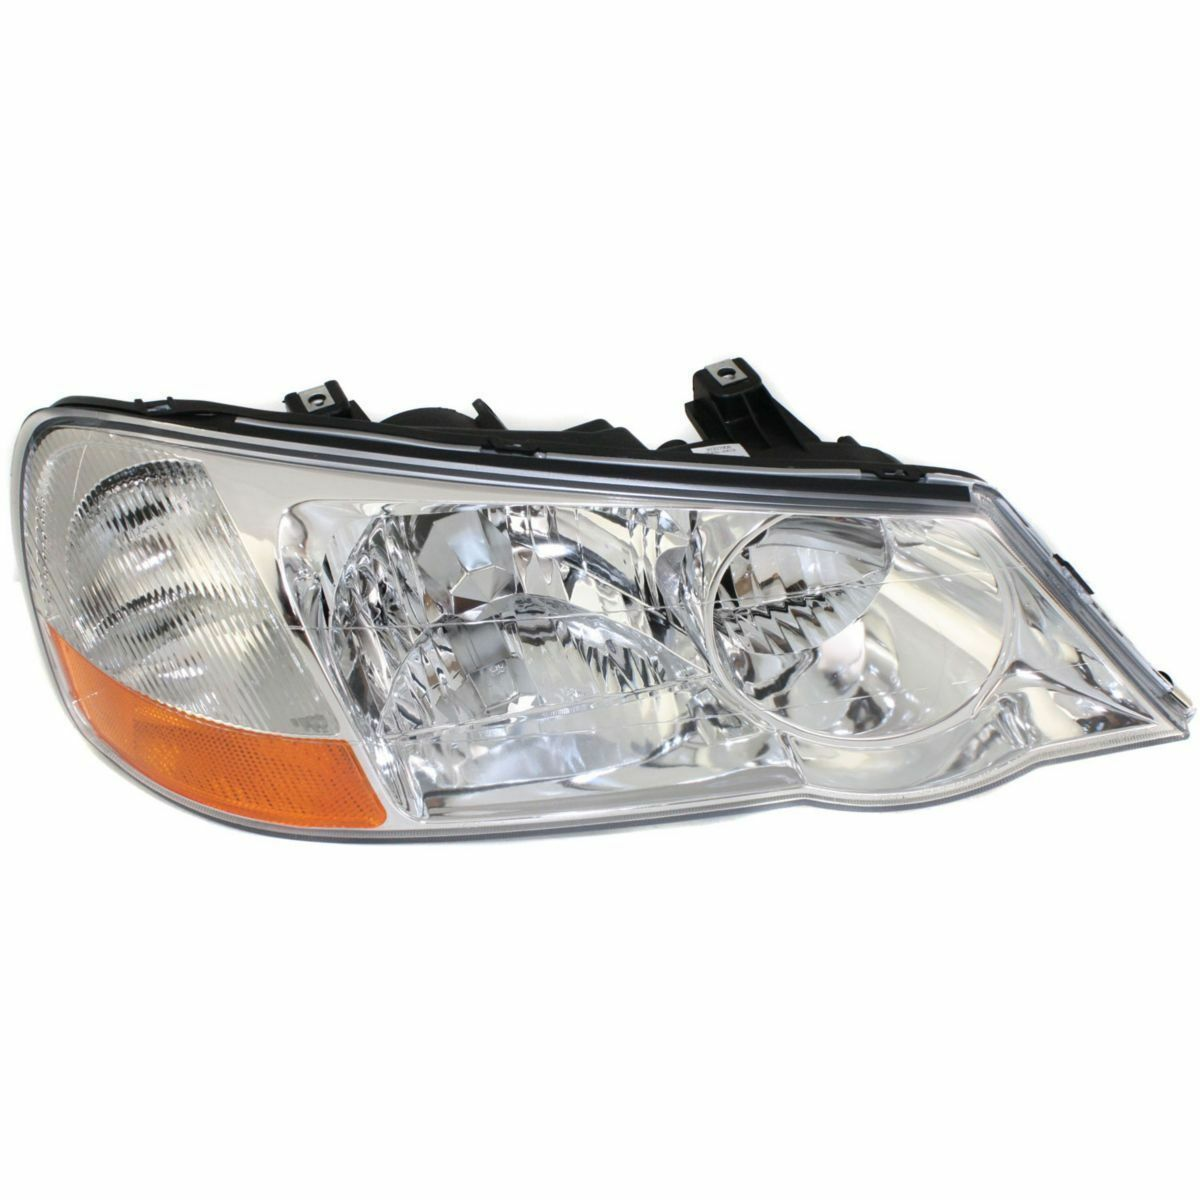 Headlights For Acura TL For Sale